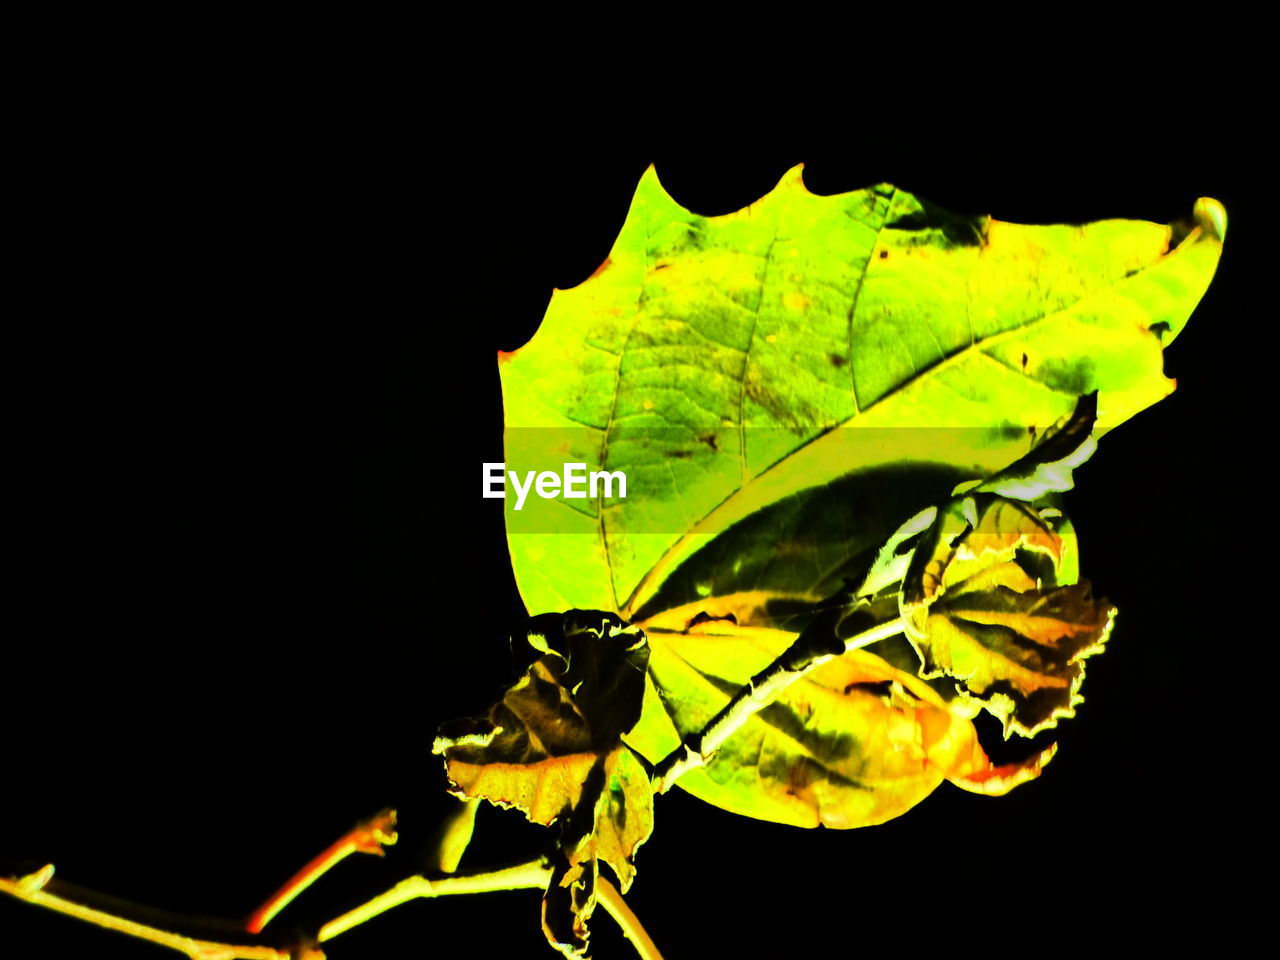 leaf, insect, one animal, animal themes, animals in the wild, close-up, no people, nature, black background, outdoors, day, beauty in nature